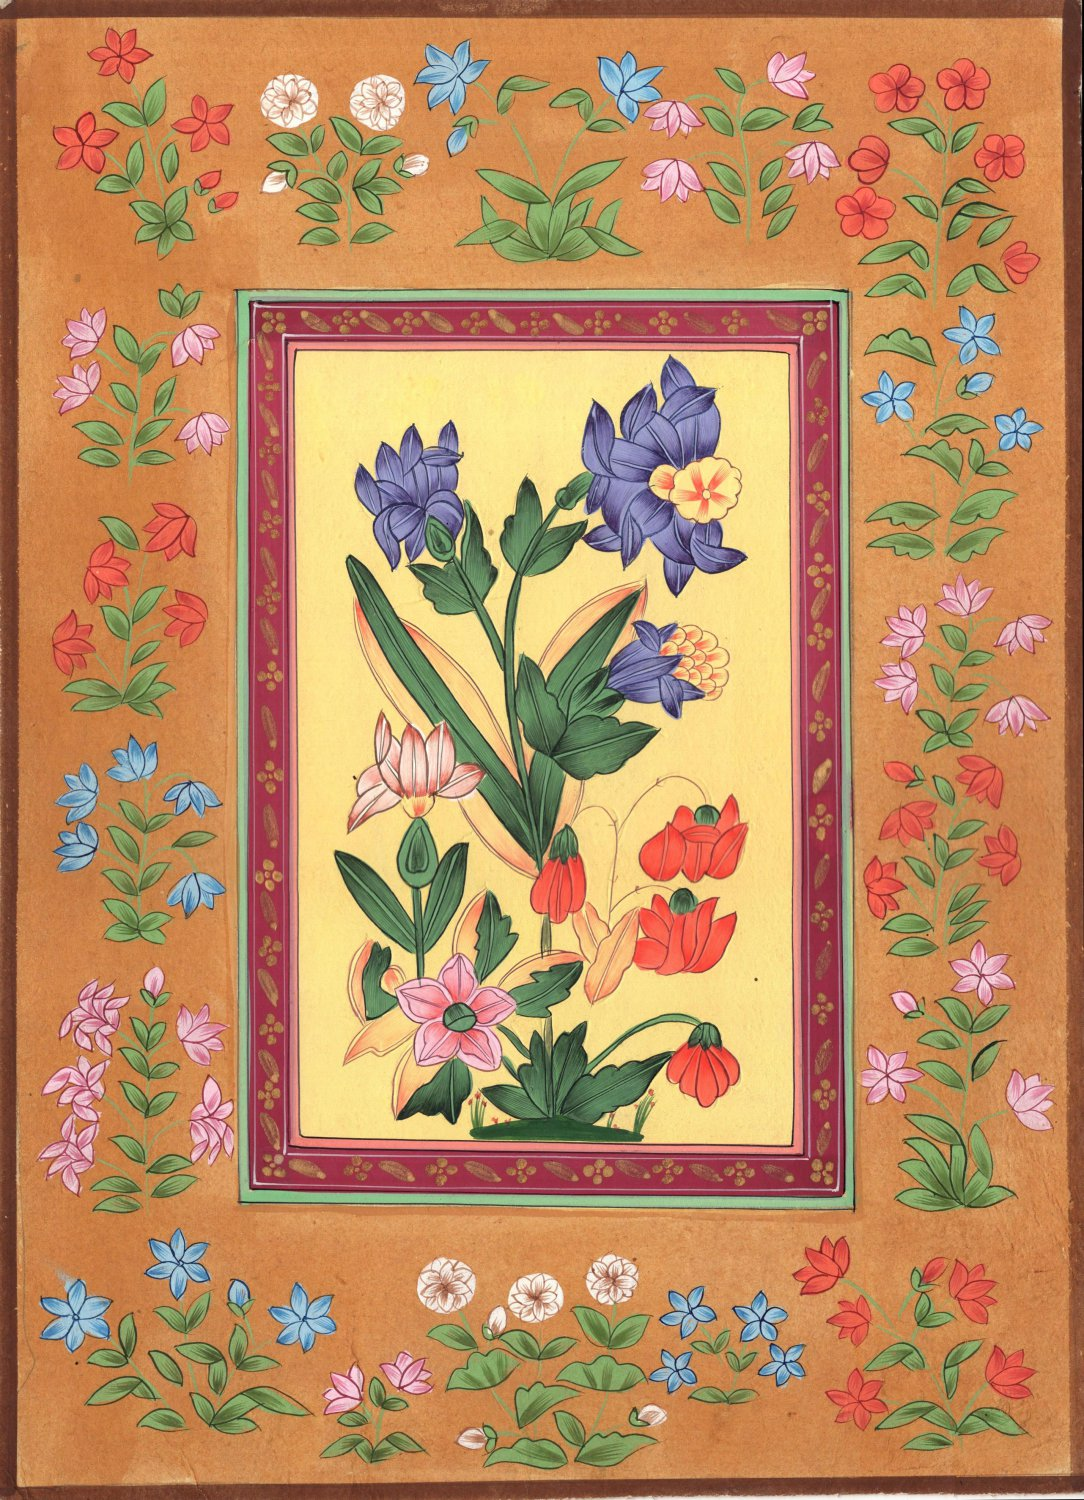 Mughal Floral Painting Handmade Moghul Indian Flower Miniature Nature Floral Art